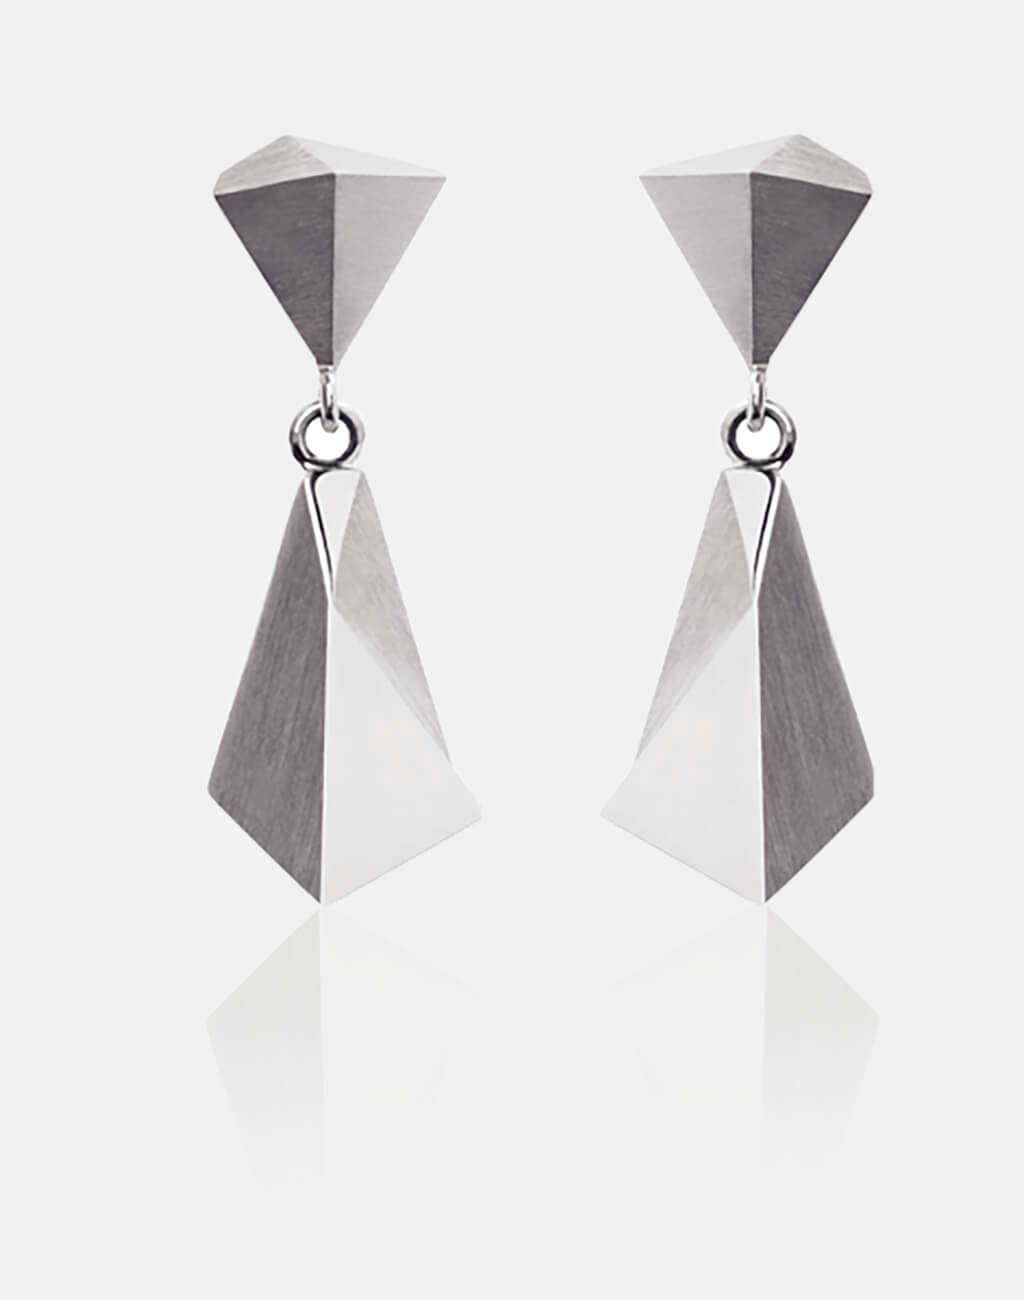 Stealth | Ohrringe, Ohrhänger 750/- Weissgold | earrings, 18kt white gold | SYNO-Schmuck.com